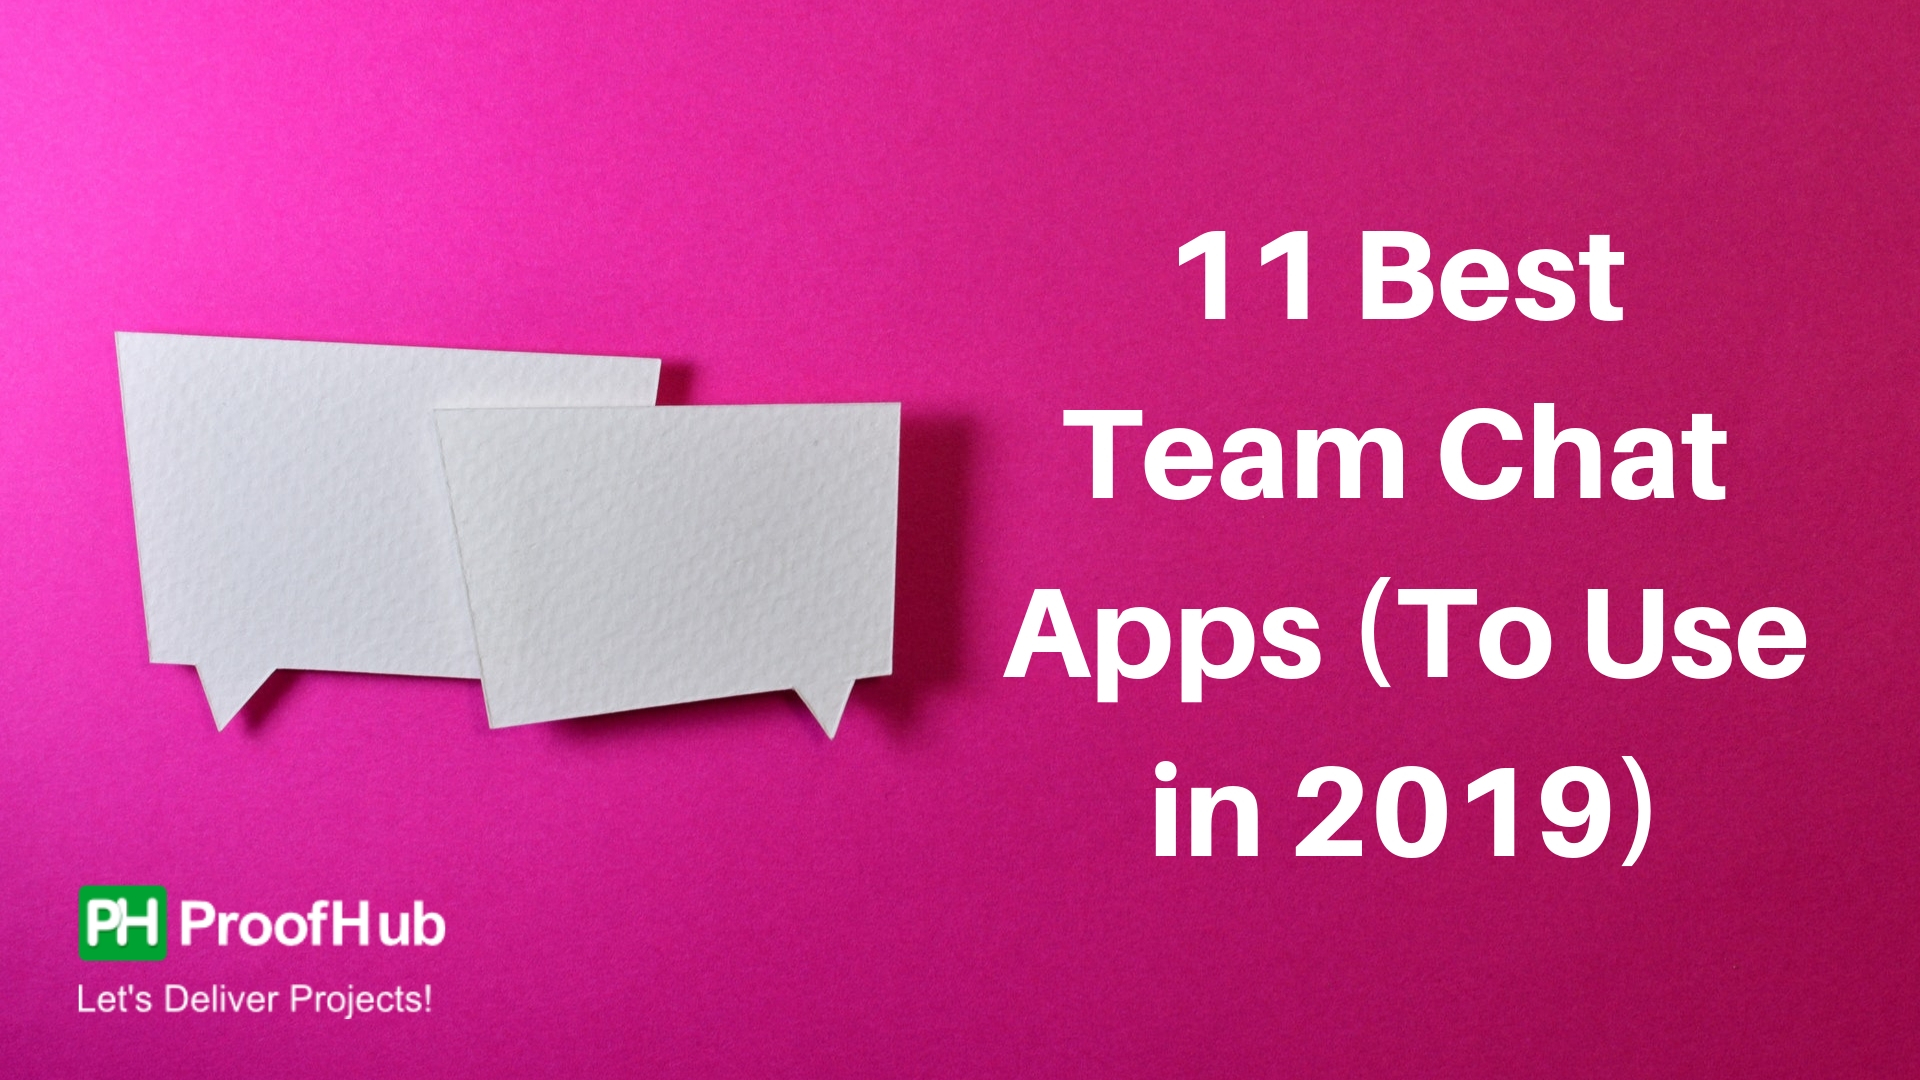 11 Best Team Chat Apps (To Use in 2019): Who's Here to Stay?